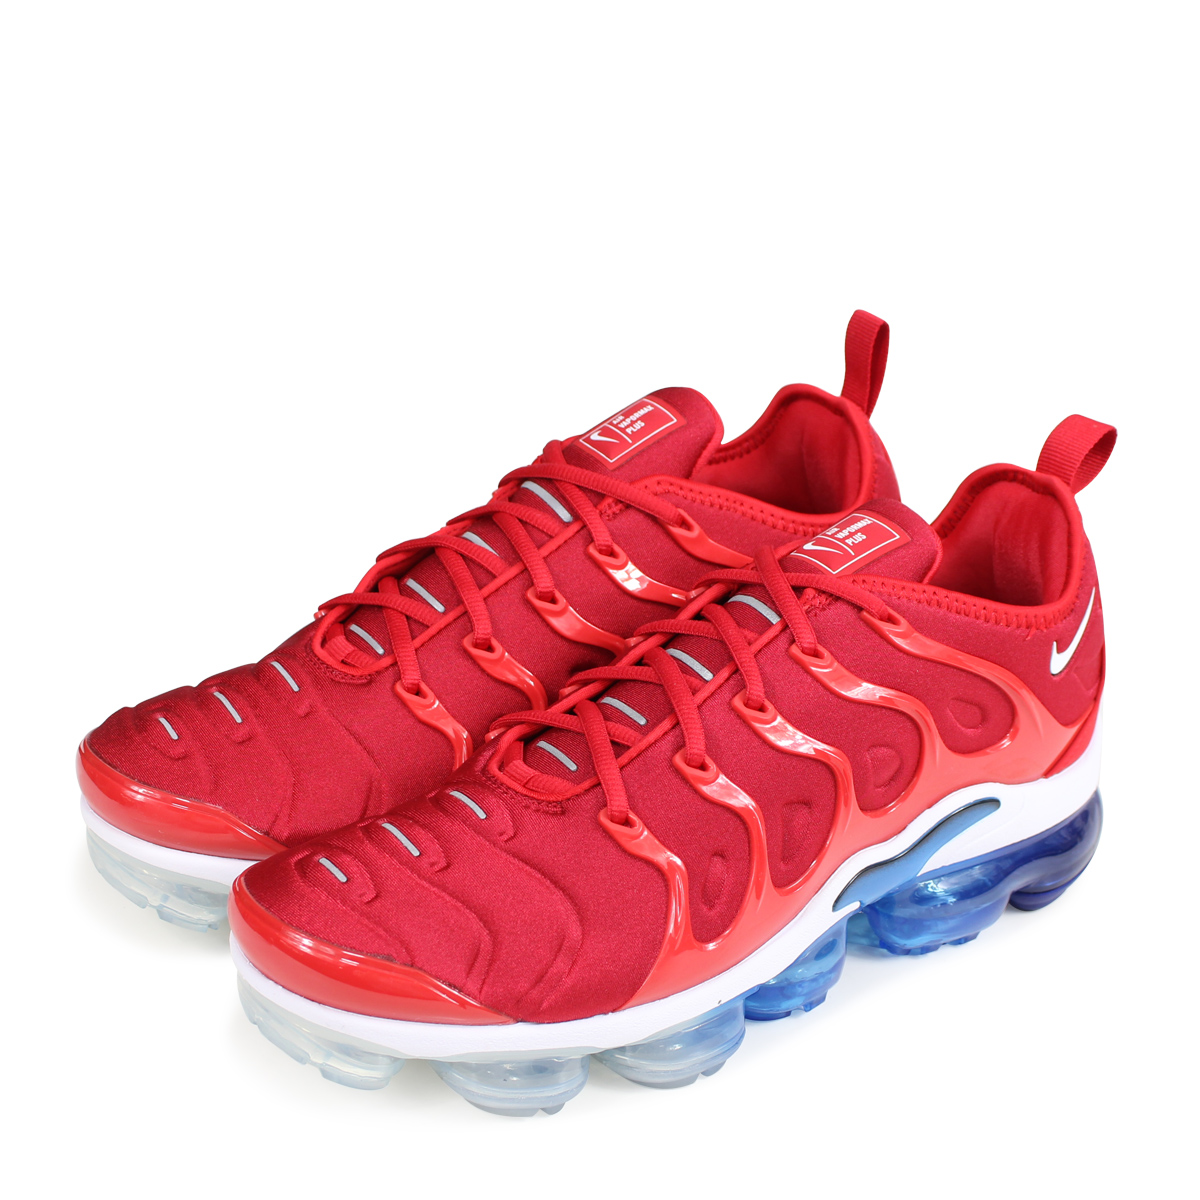 74c15a735059 ALLSPORTS  NIKE AIR VAPORMAX PLUS Nike air vapor max plus sneakers ...